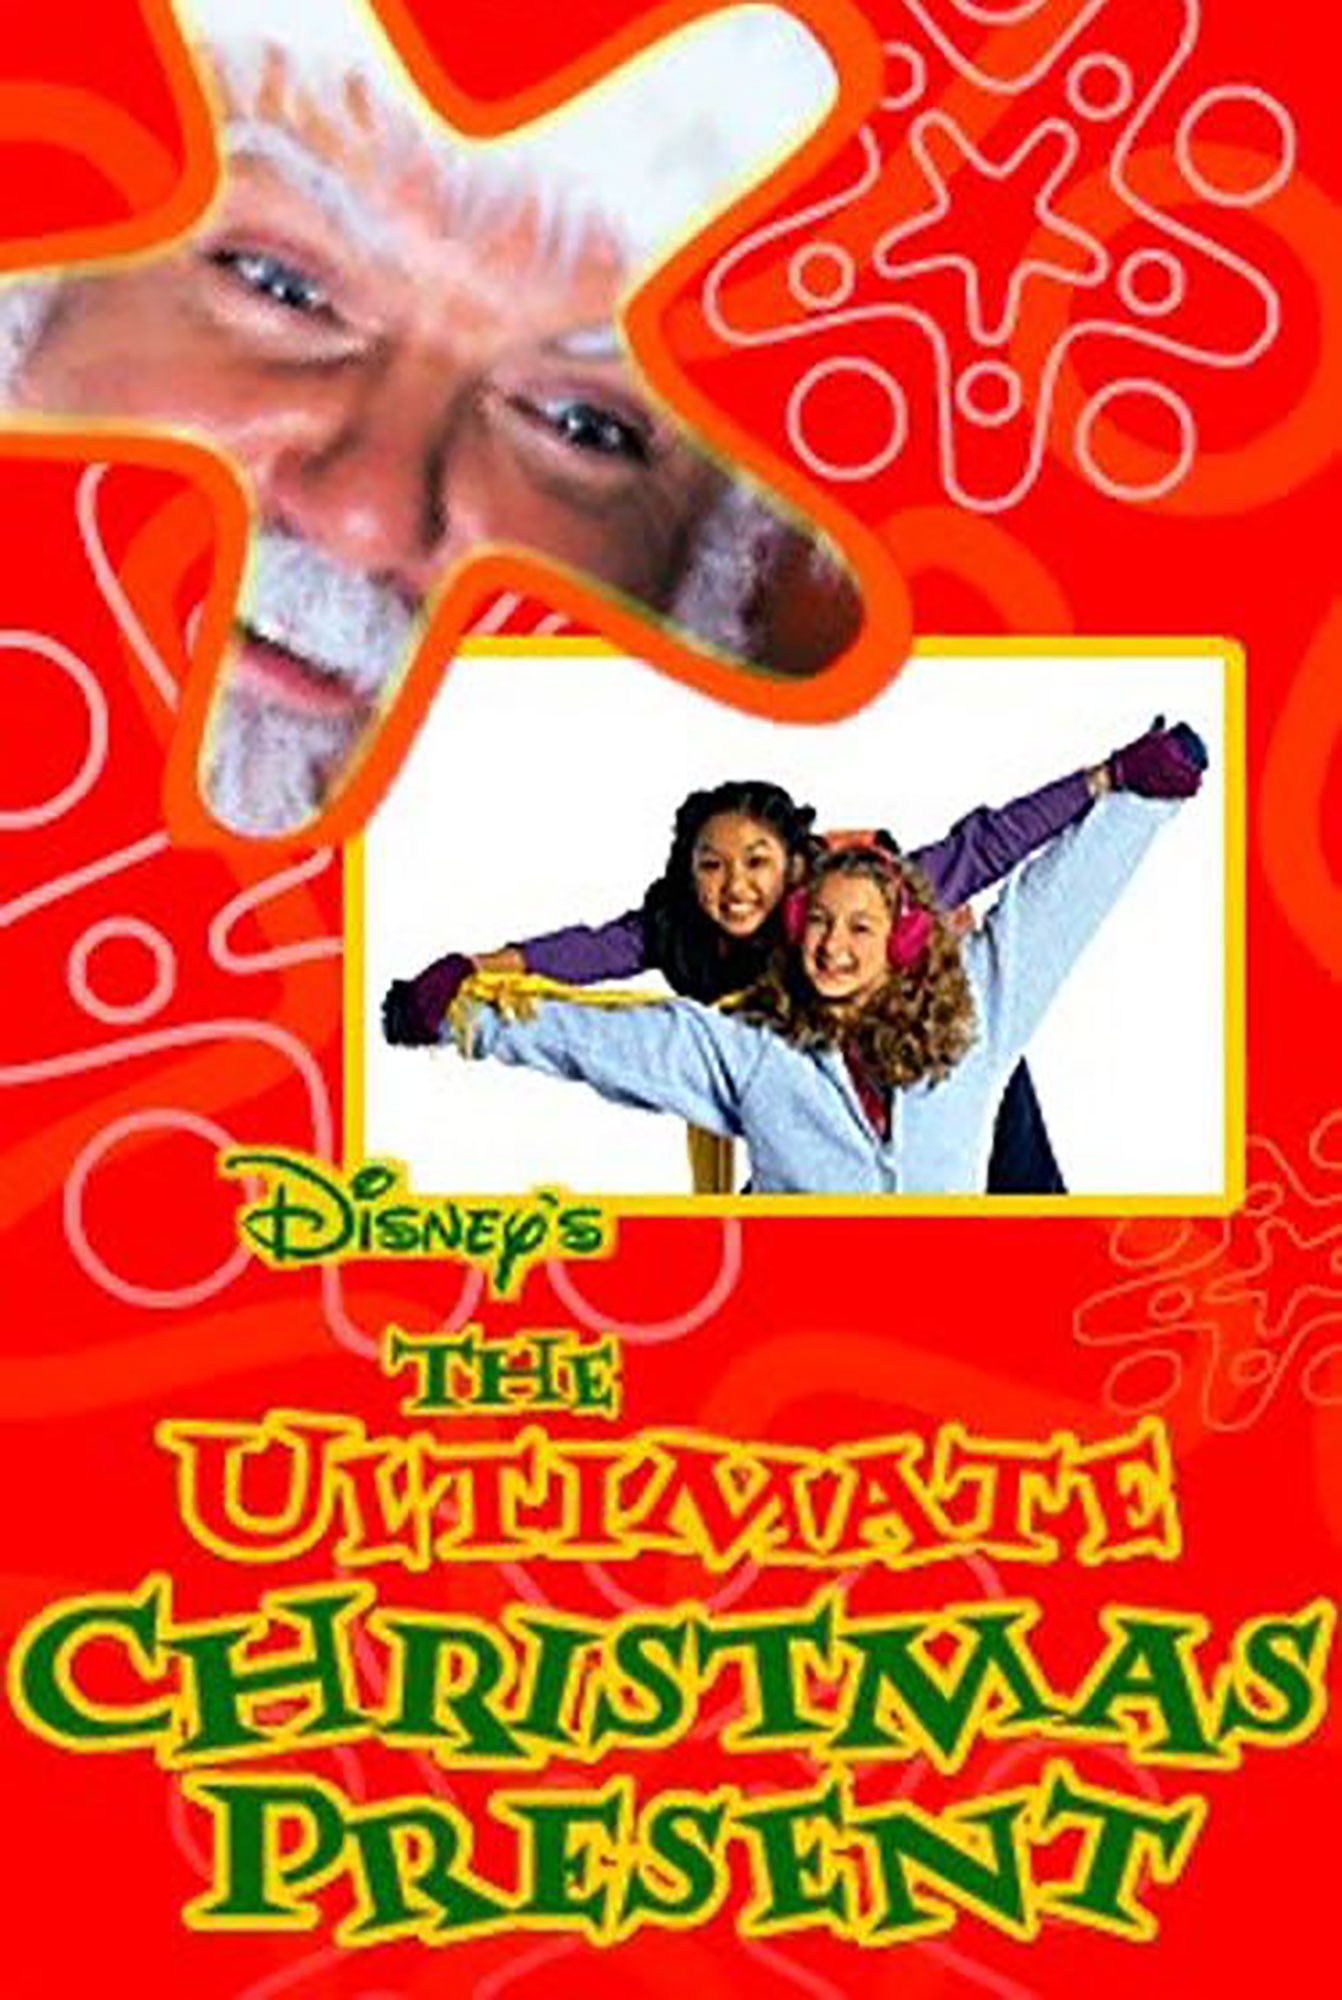 Affiche Poster plus beau cadeau noel ultimate christmas present disney channel